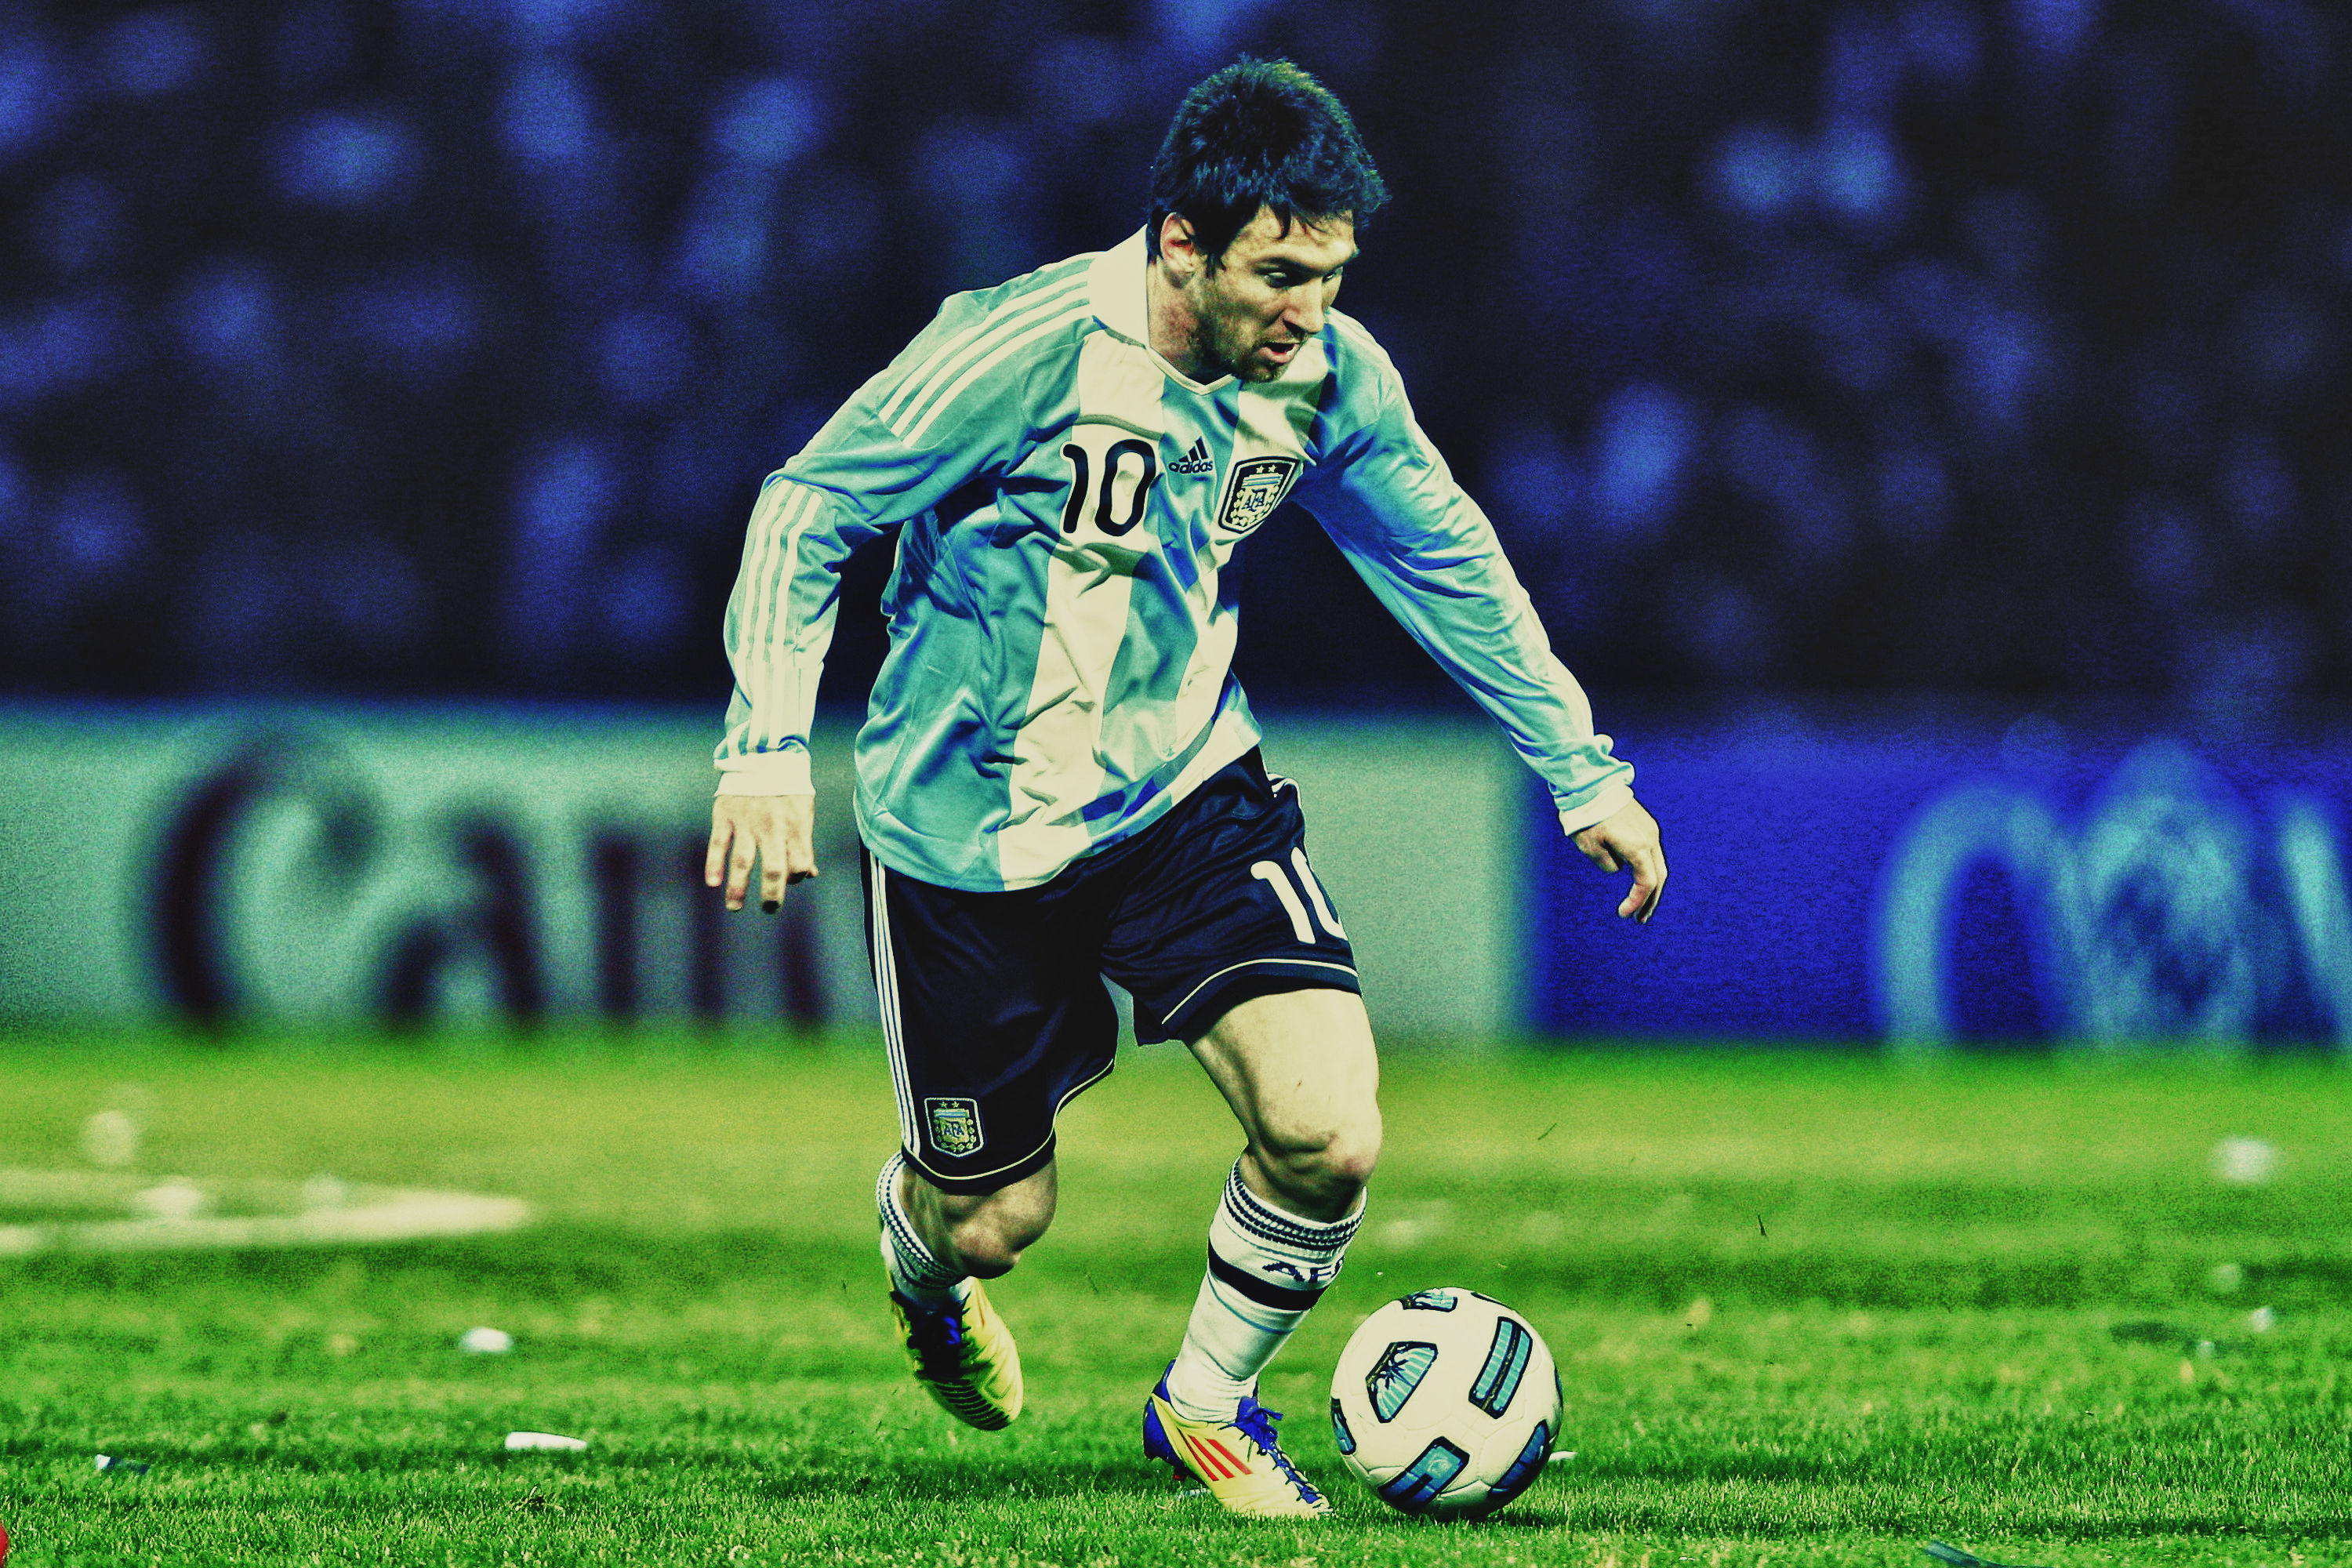 lionel messi full hd wallpaper and background image | 3000x2000 | id